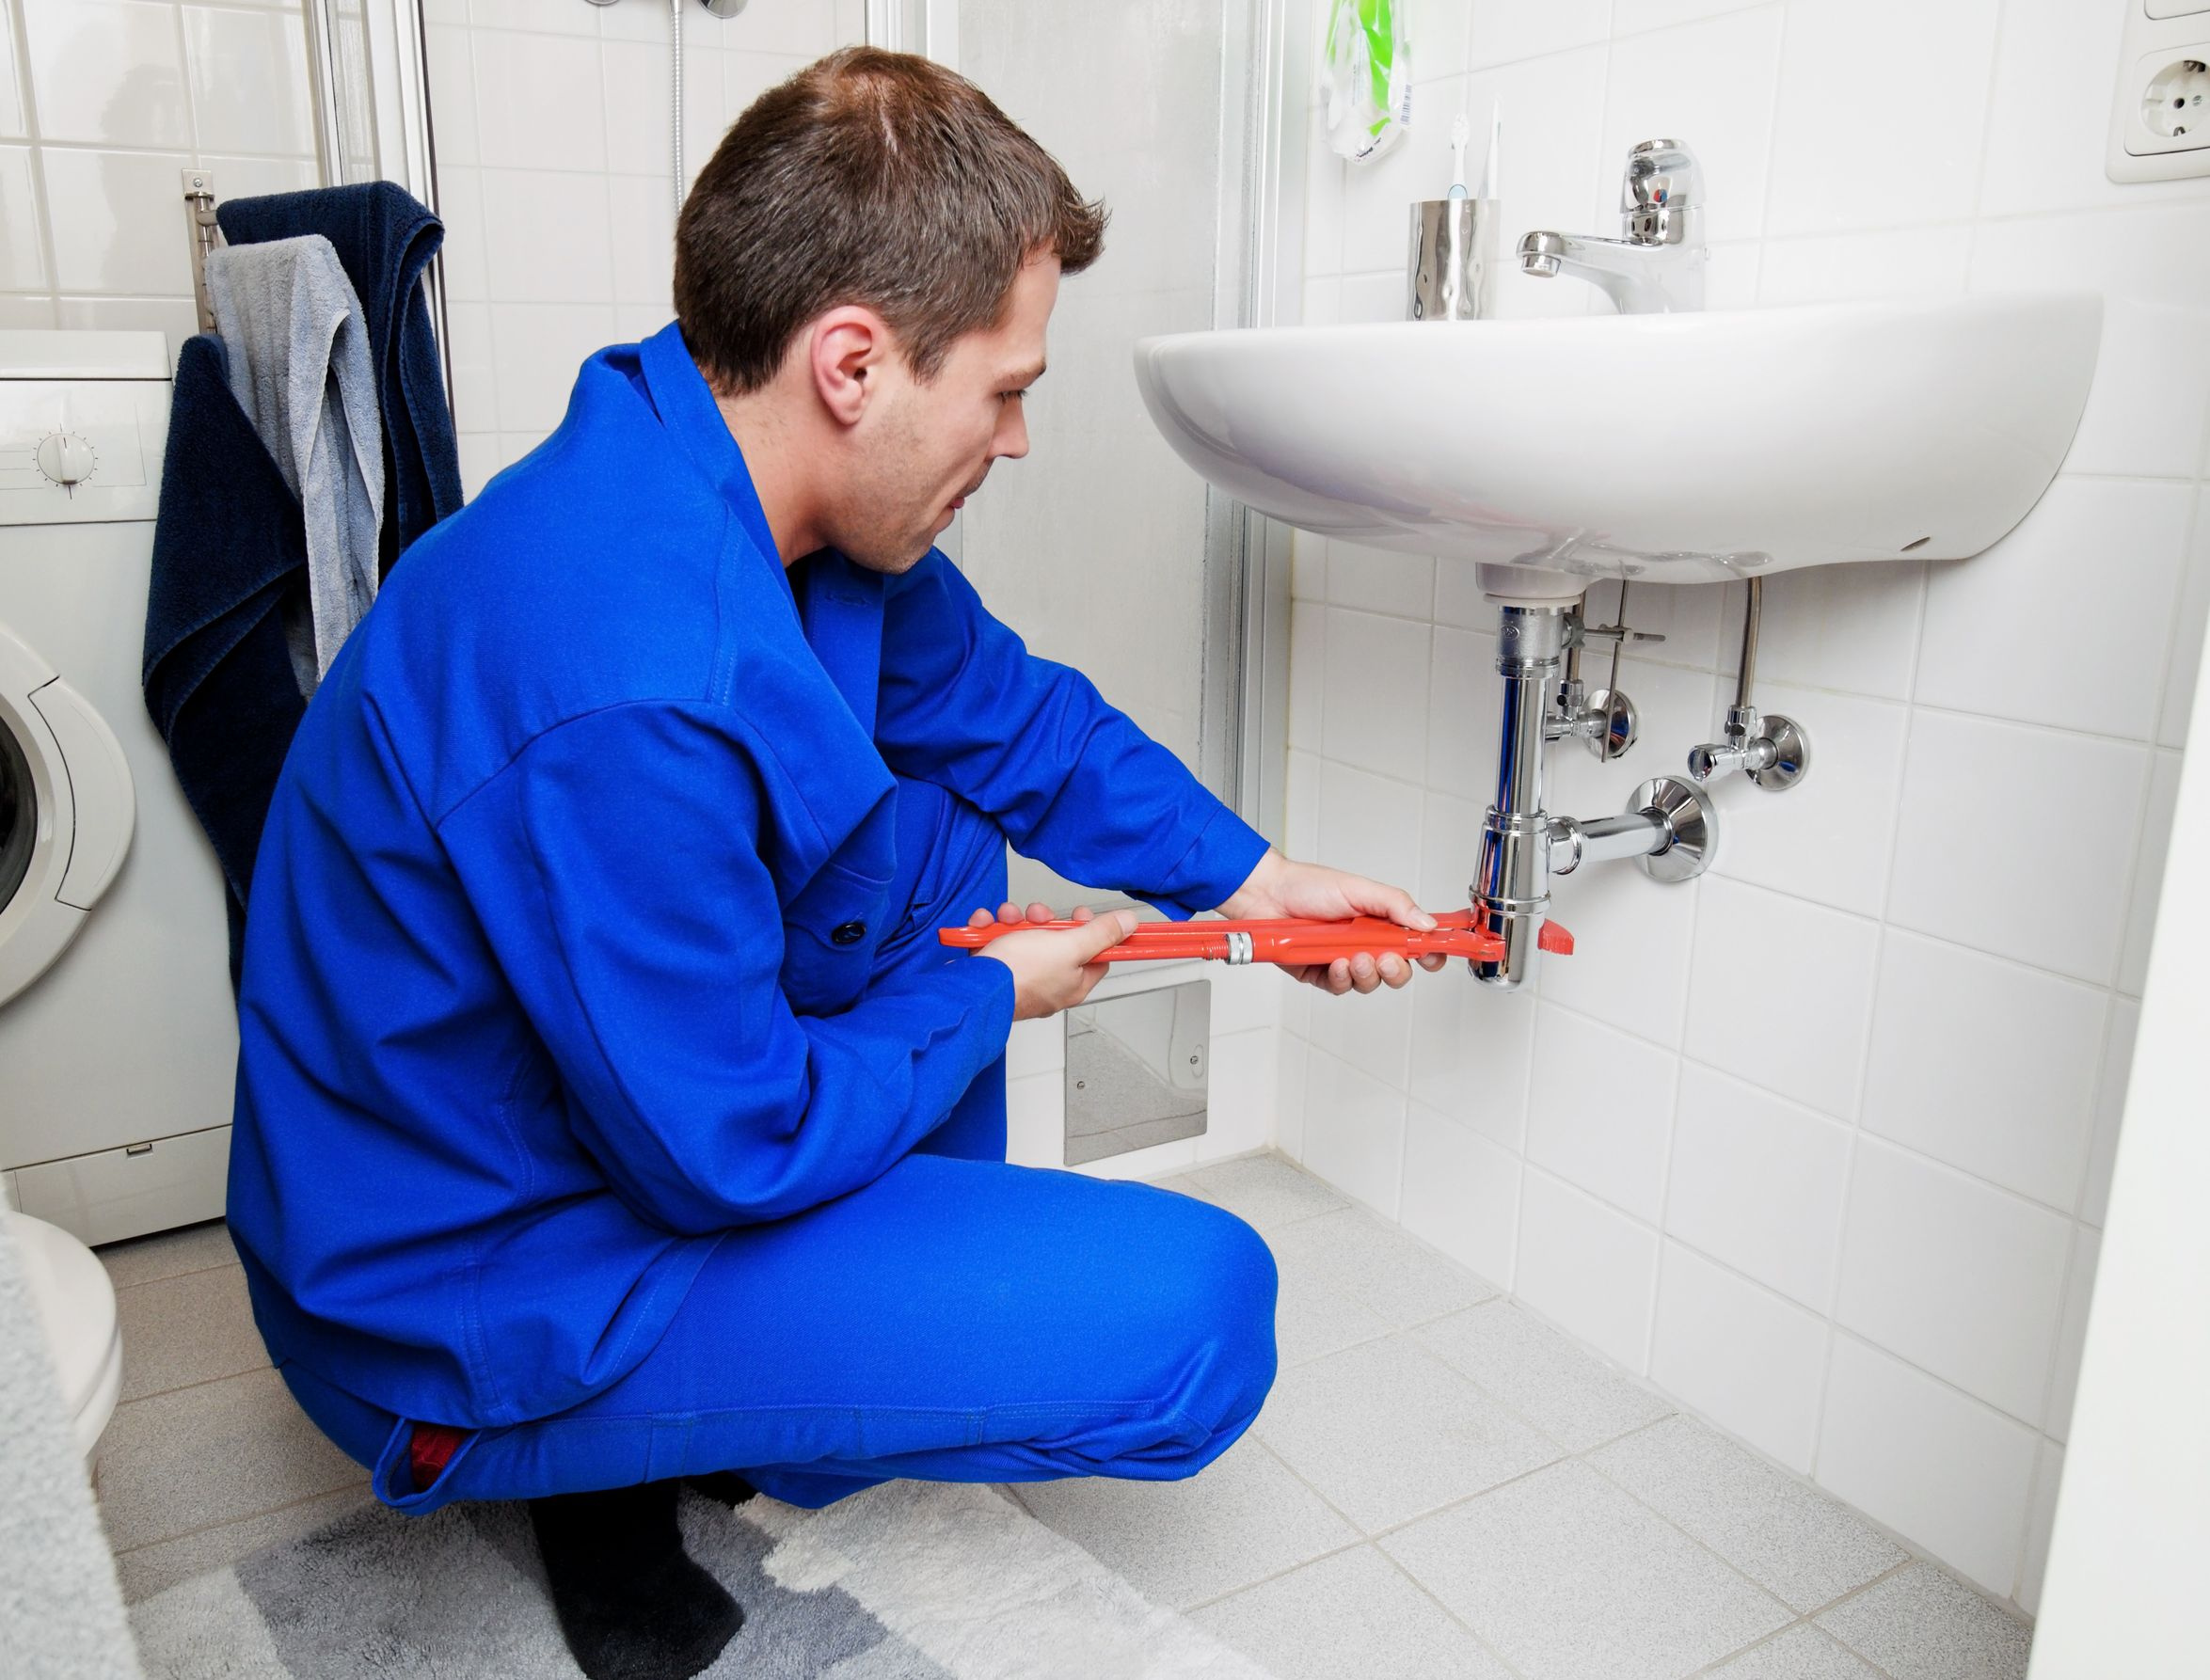 Don't Wait, Get Emergency Plumbing Services Today near Binghamton NY